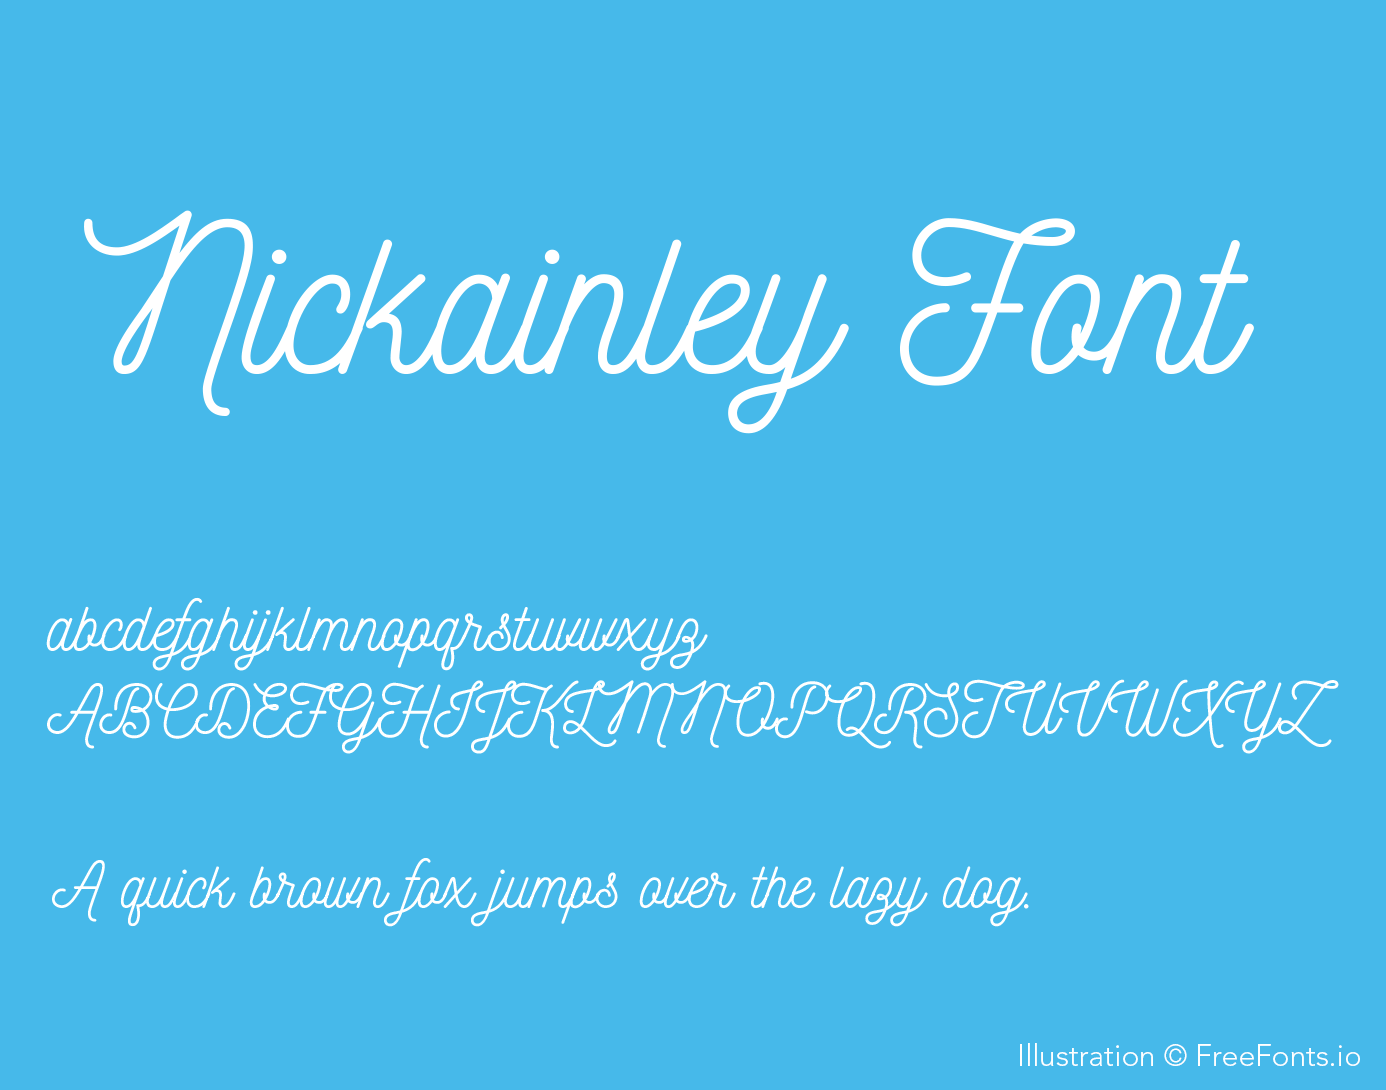 nickainley-font_poster